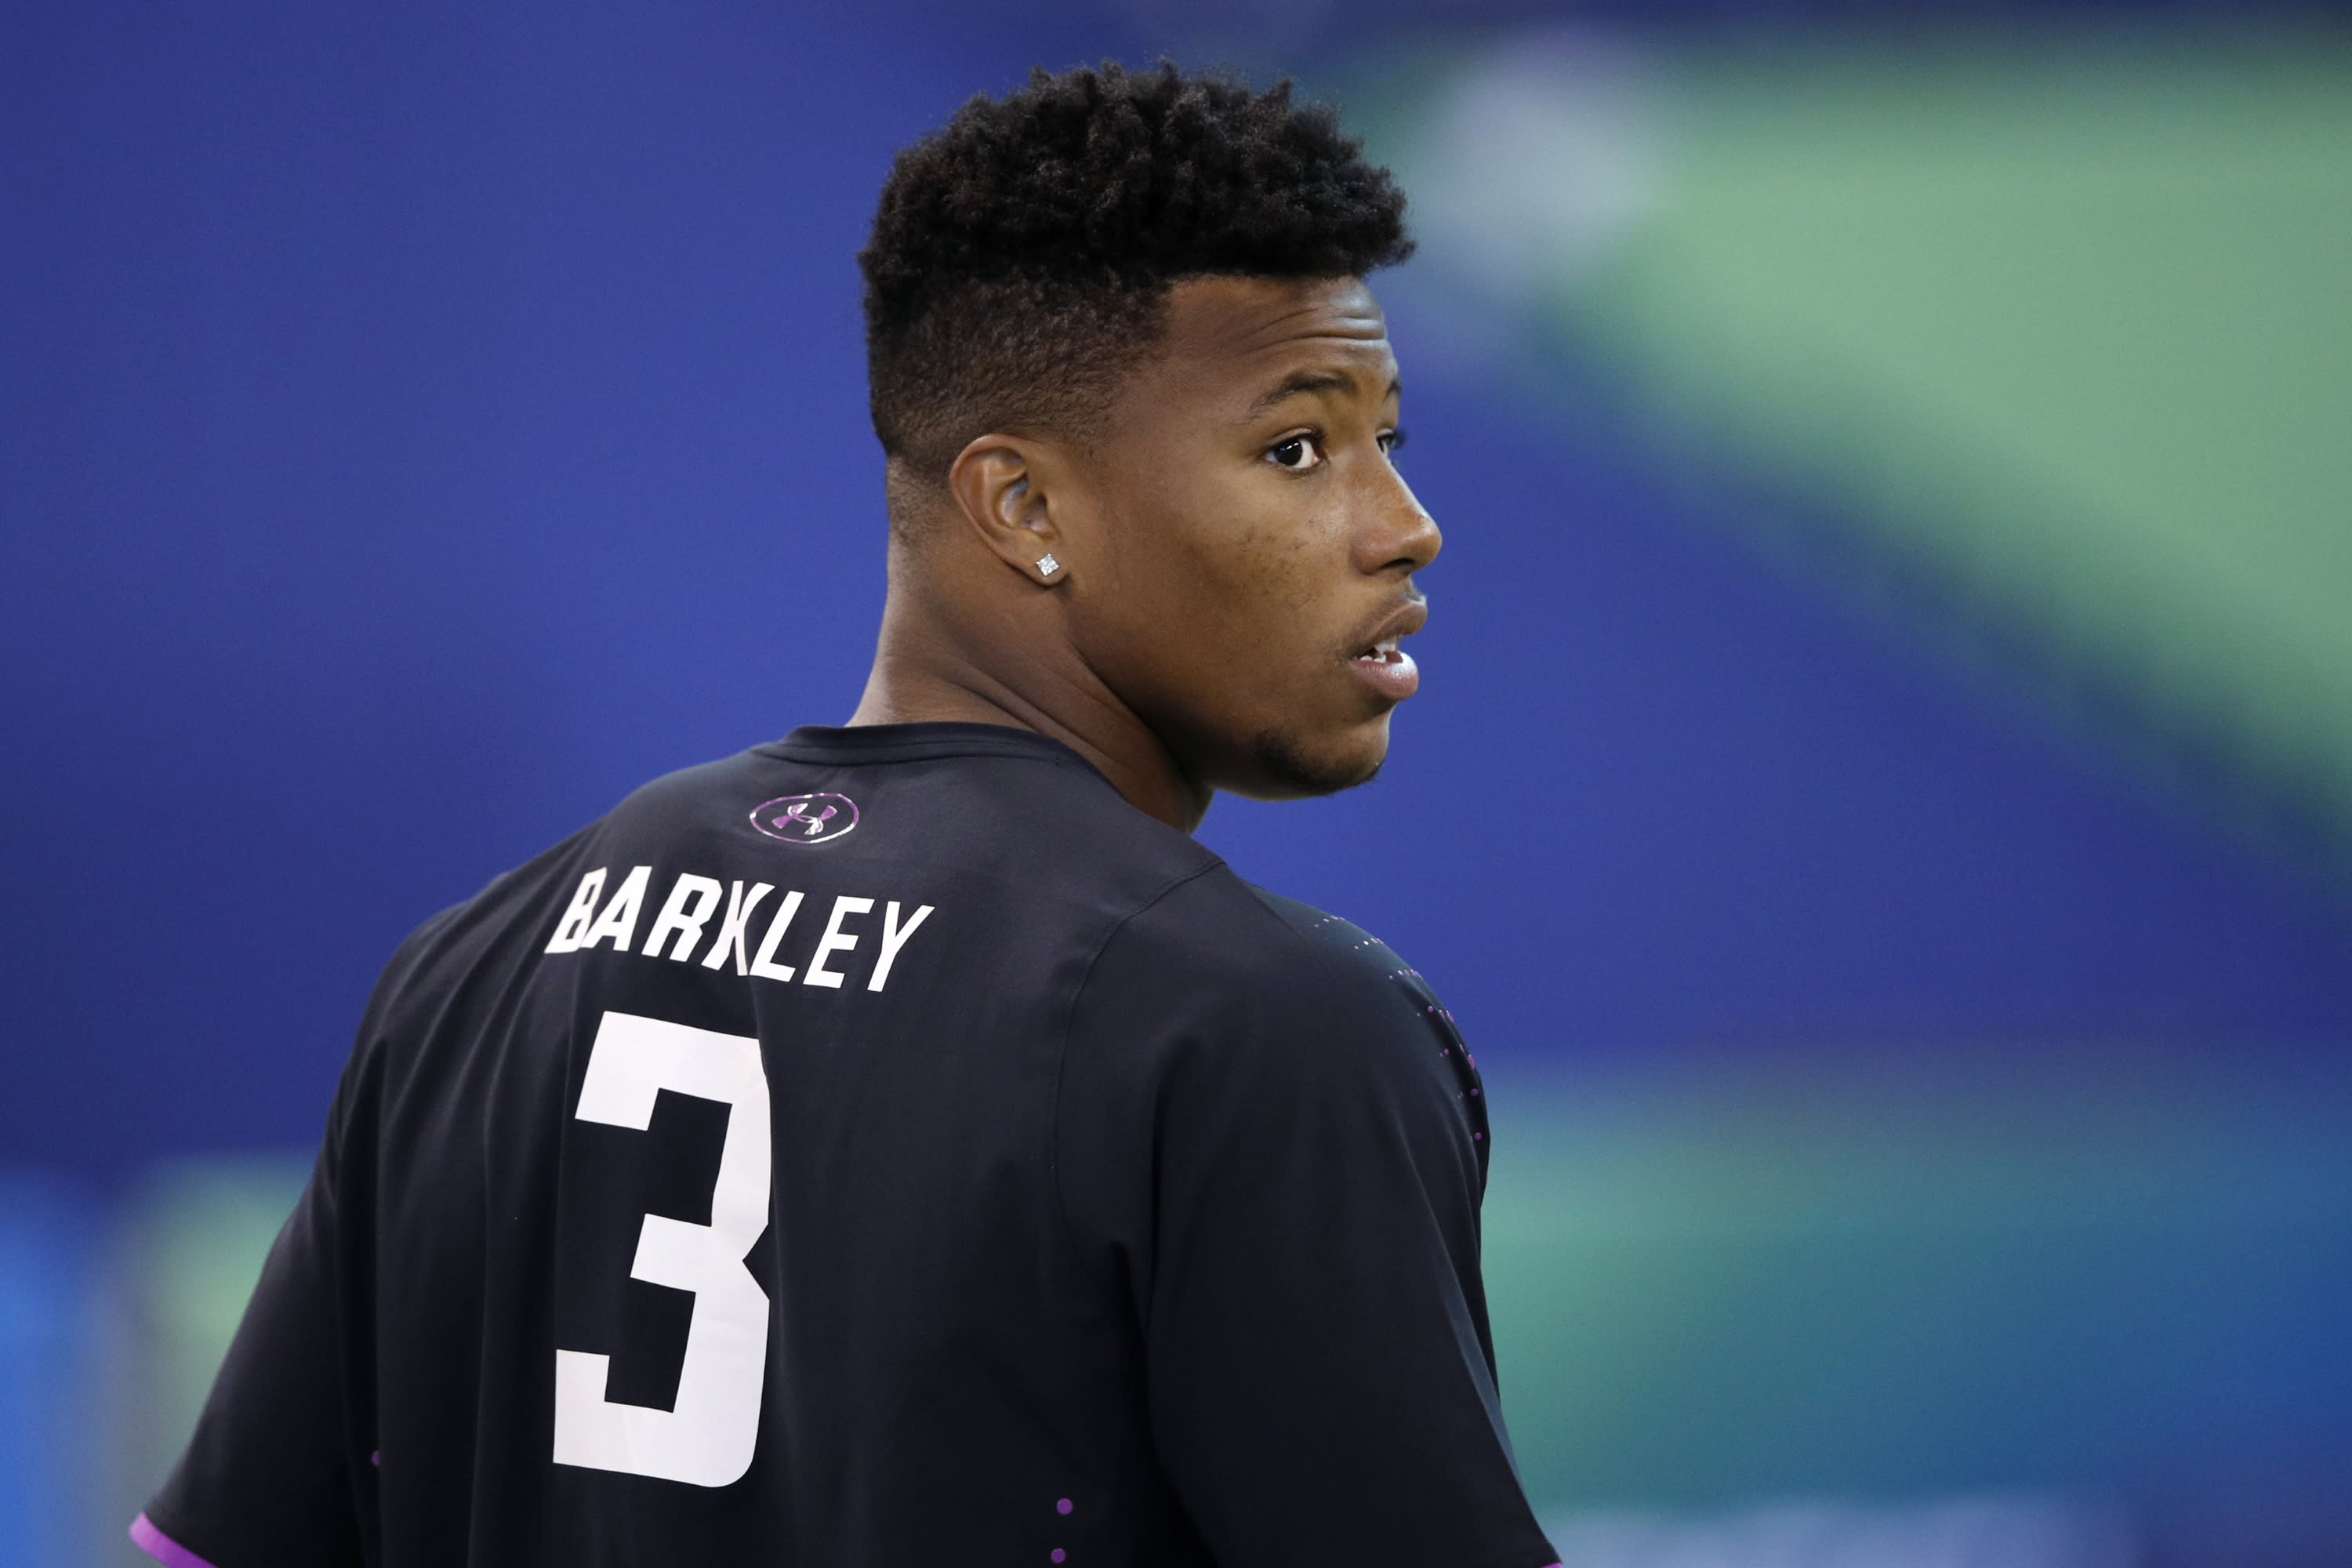 Saquon Barkley skips Penn State pro day, calls himself best player in the NFL draft